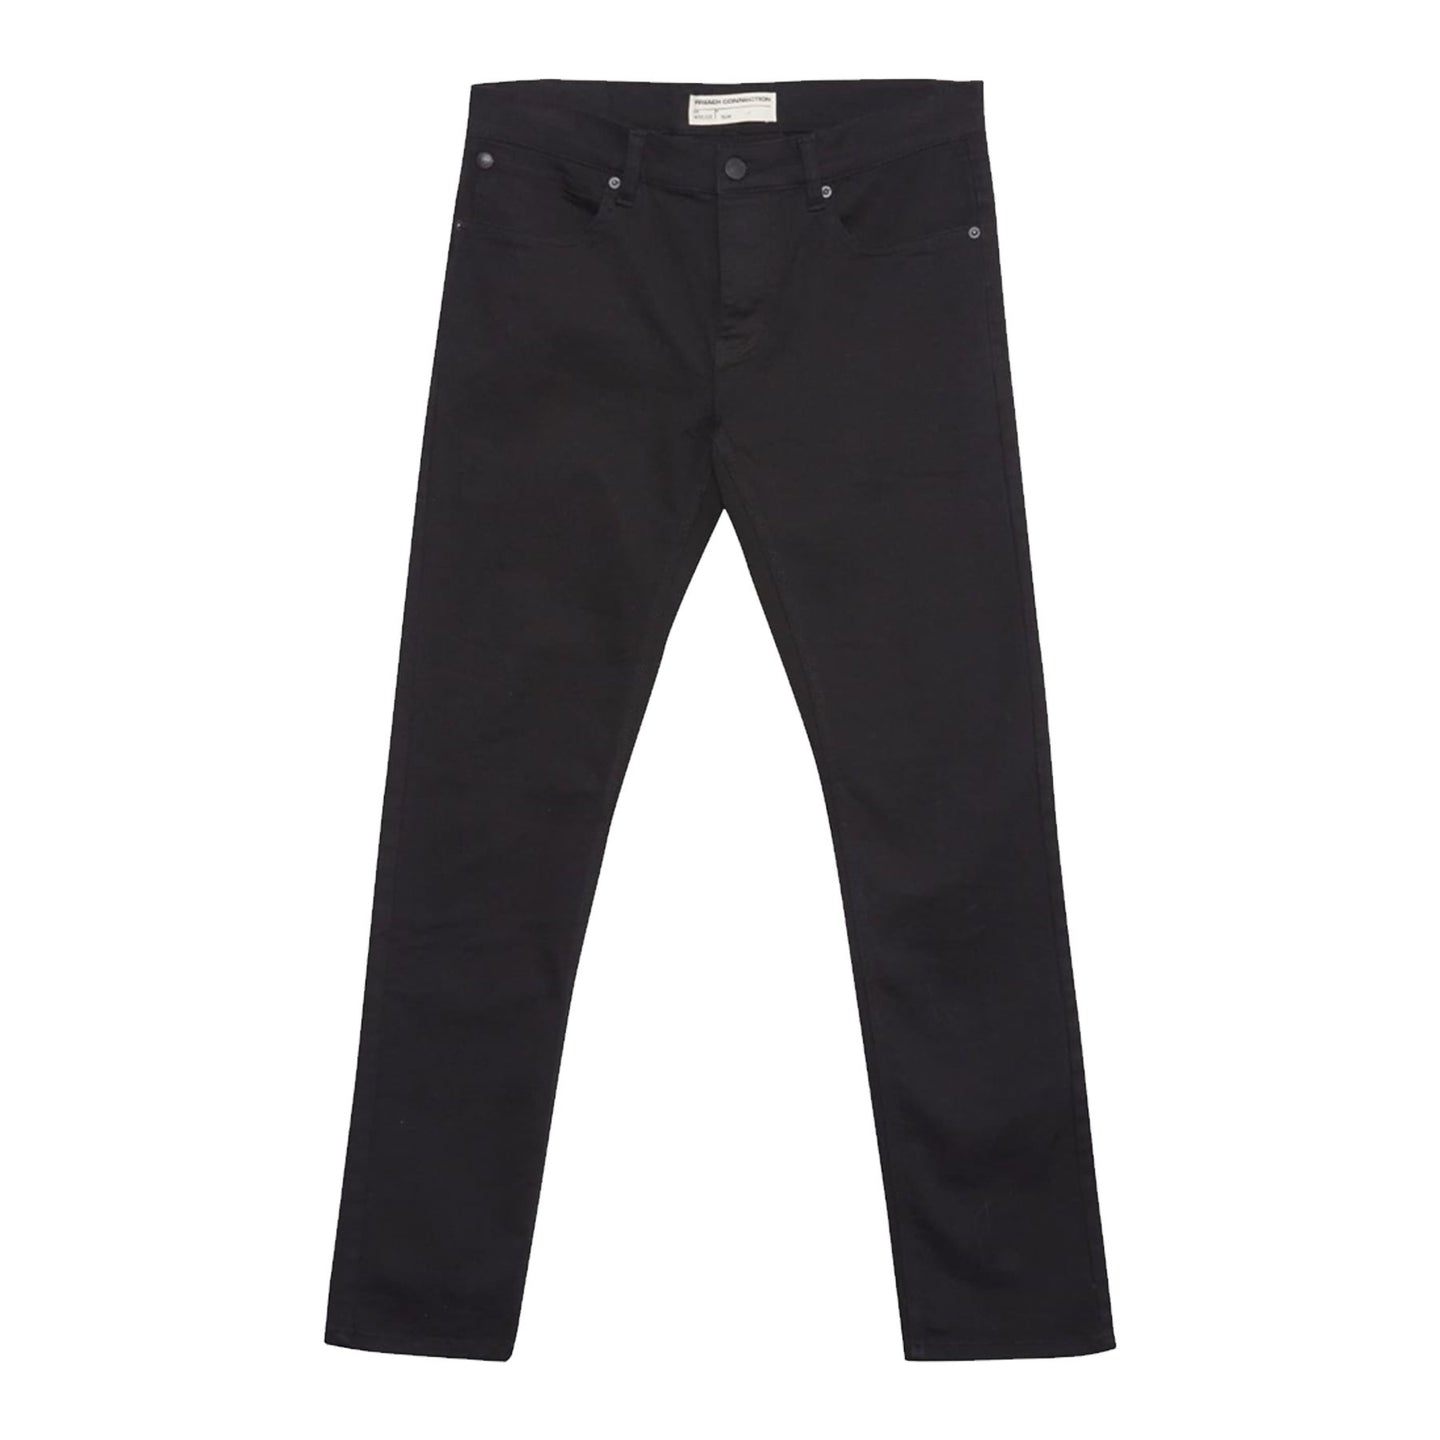 French Connection Slim Jeans - Black